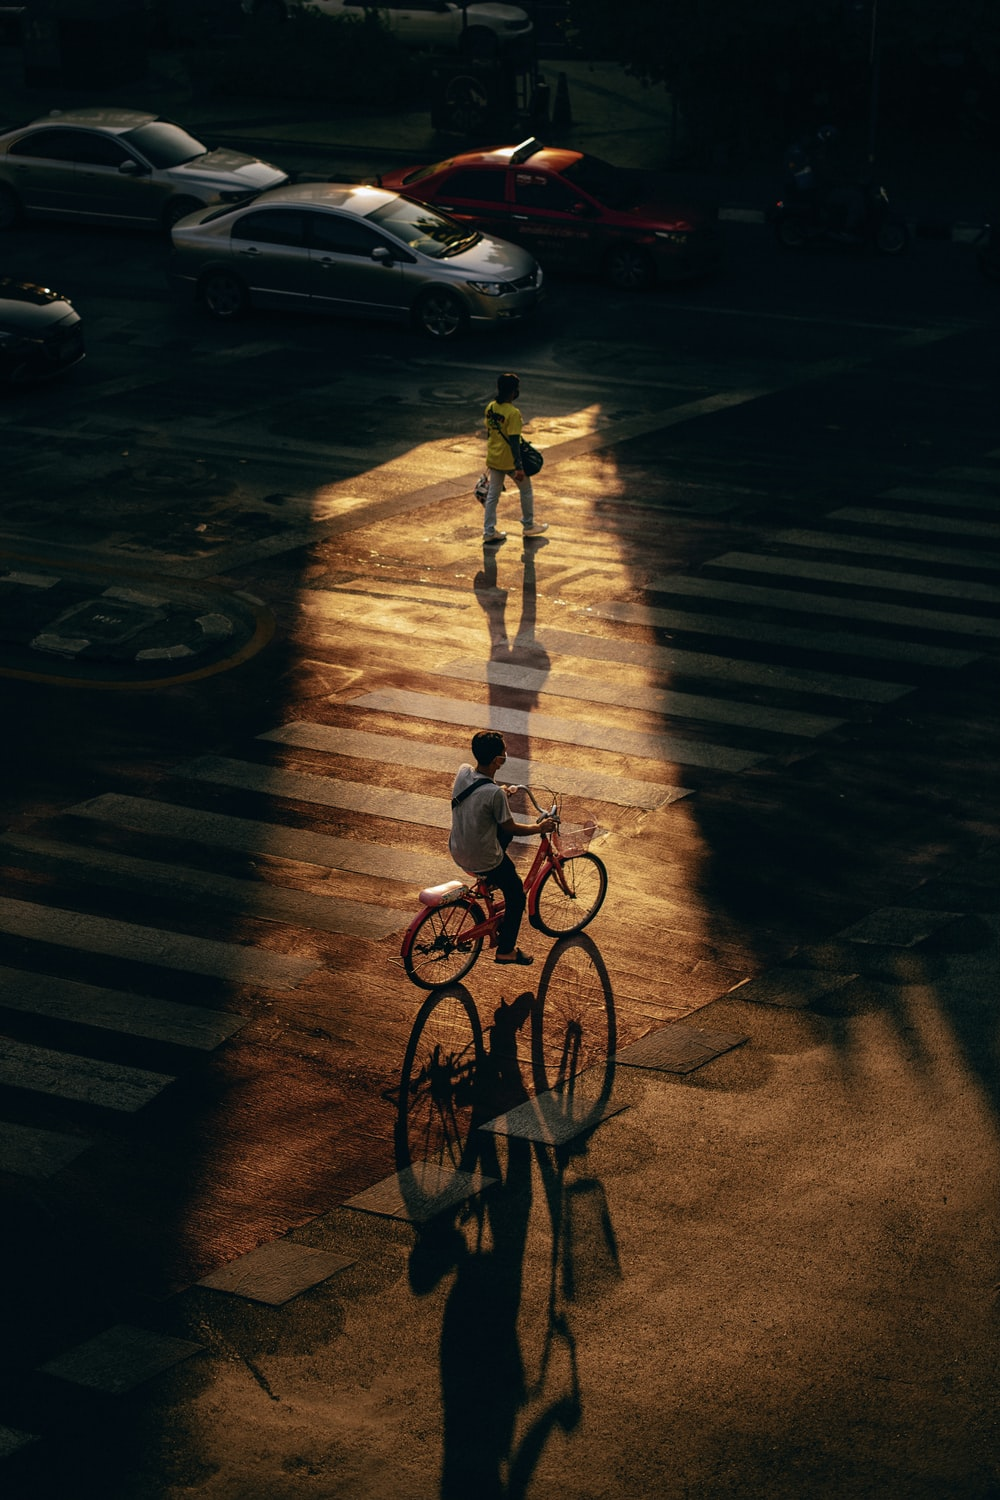 girl in white shirt and pants riding bicycle on road during night time